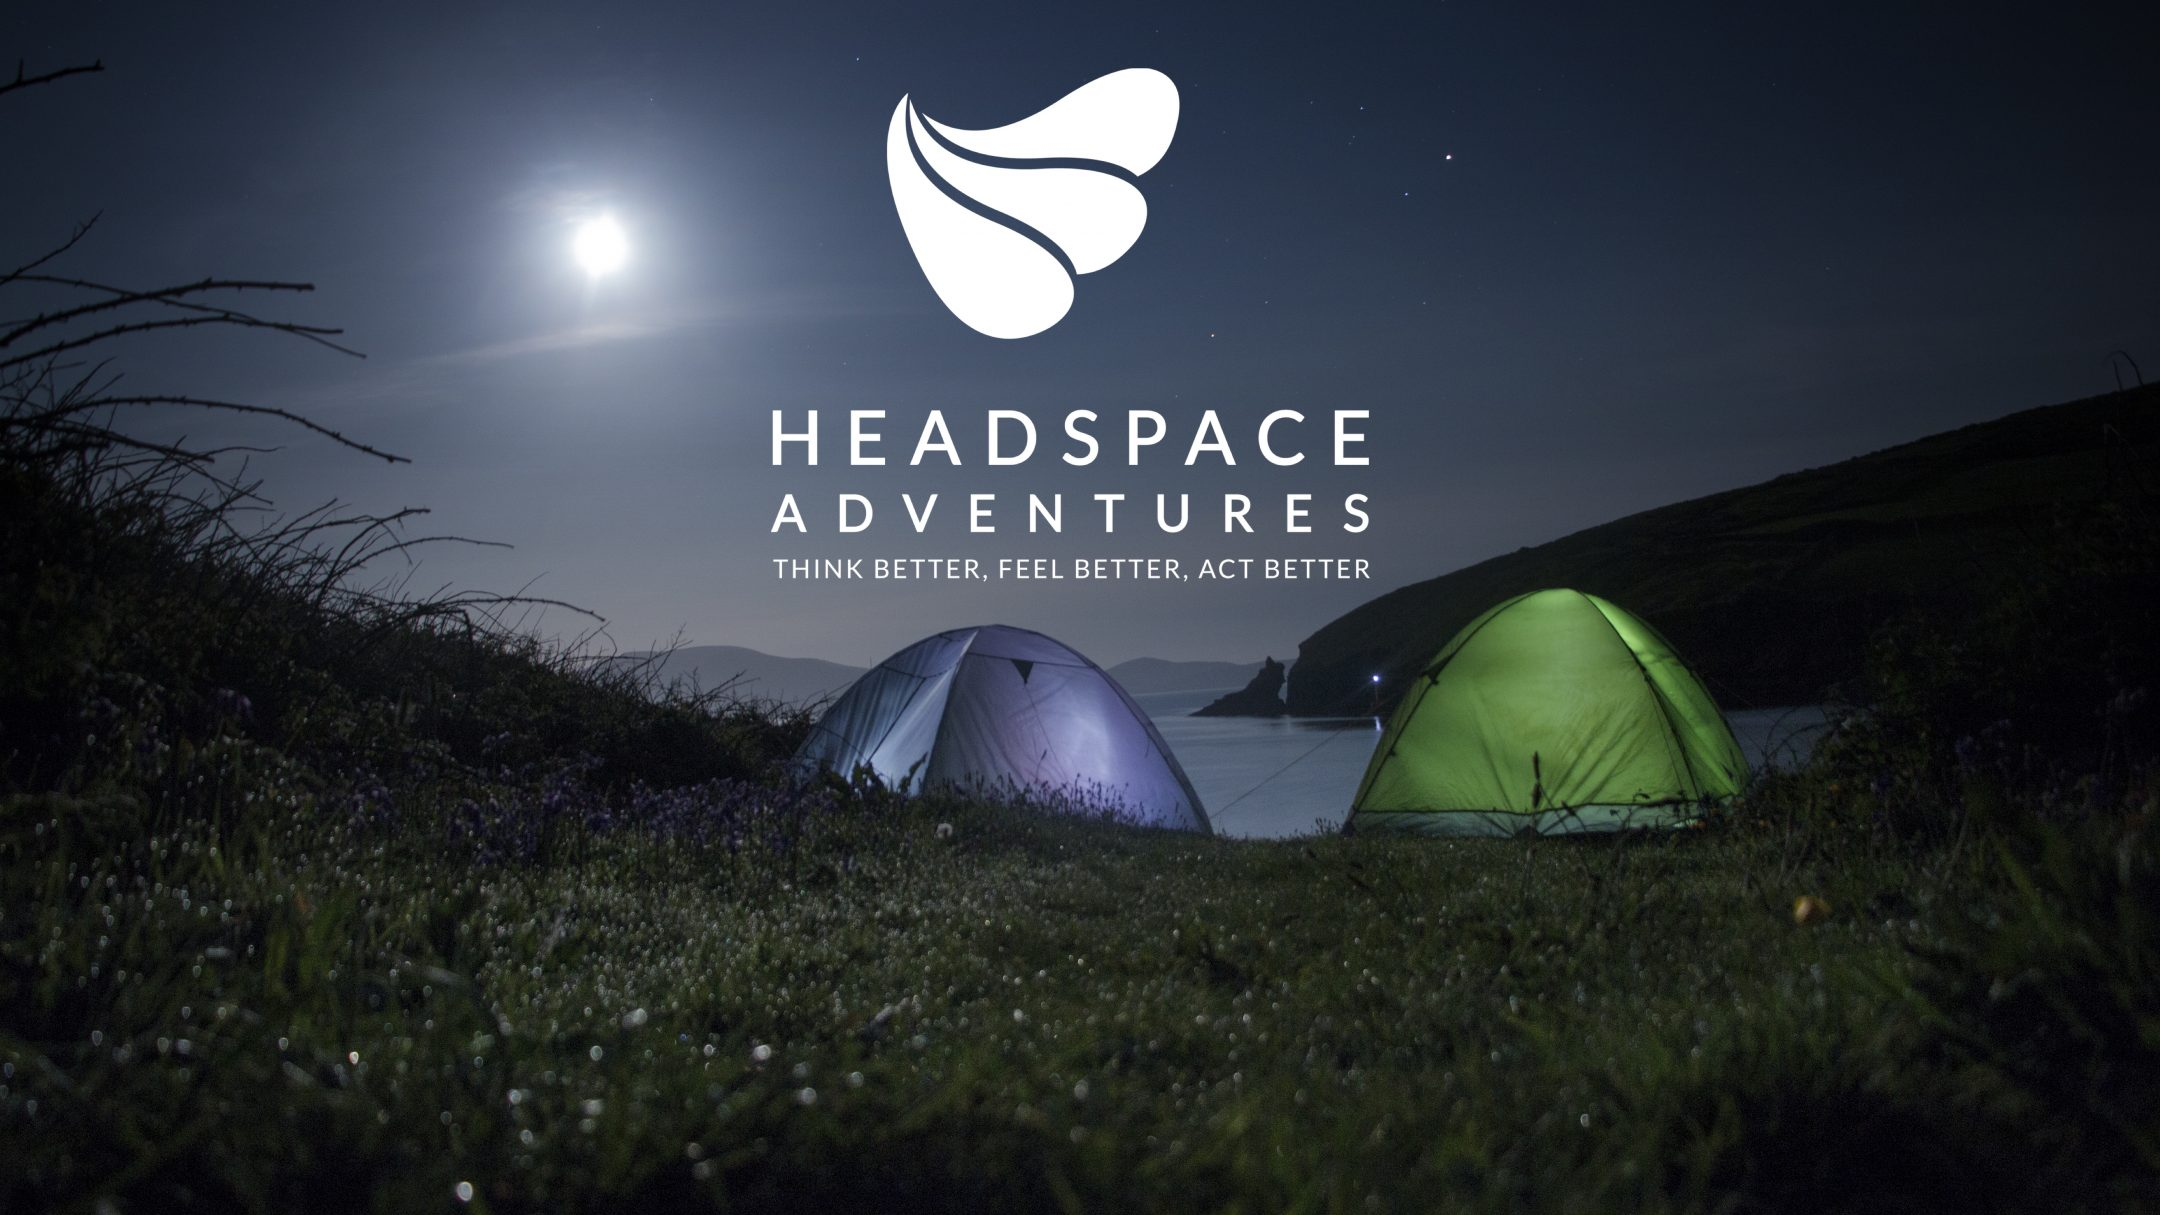 Headspace Adventures Welcome